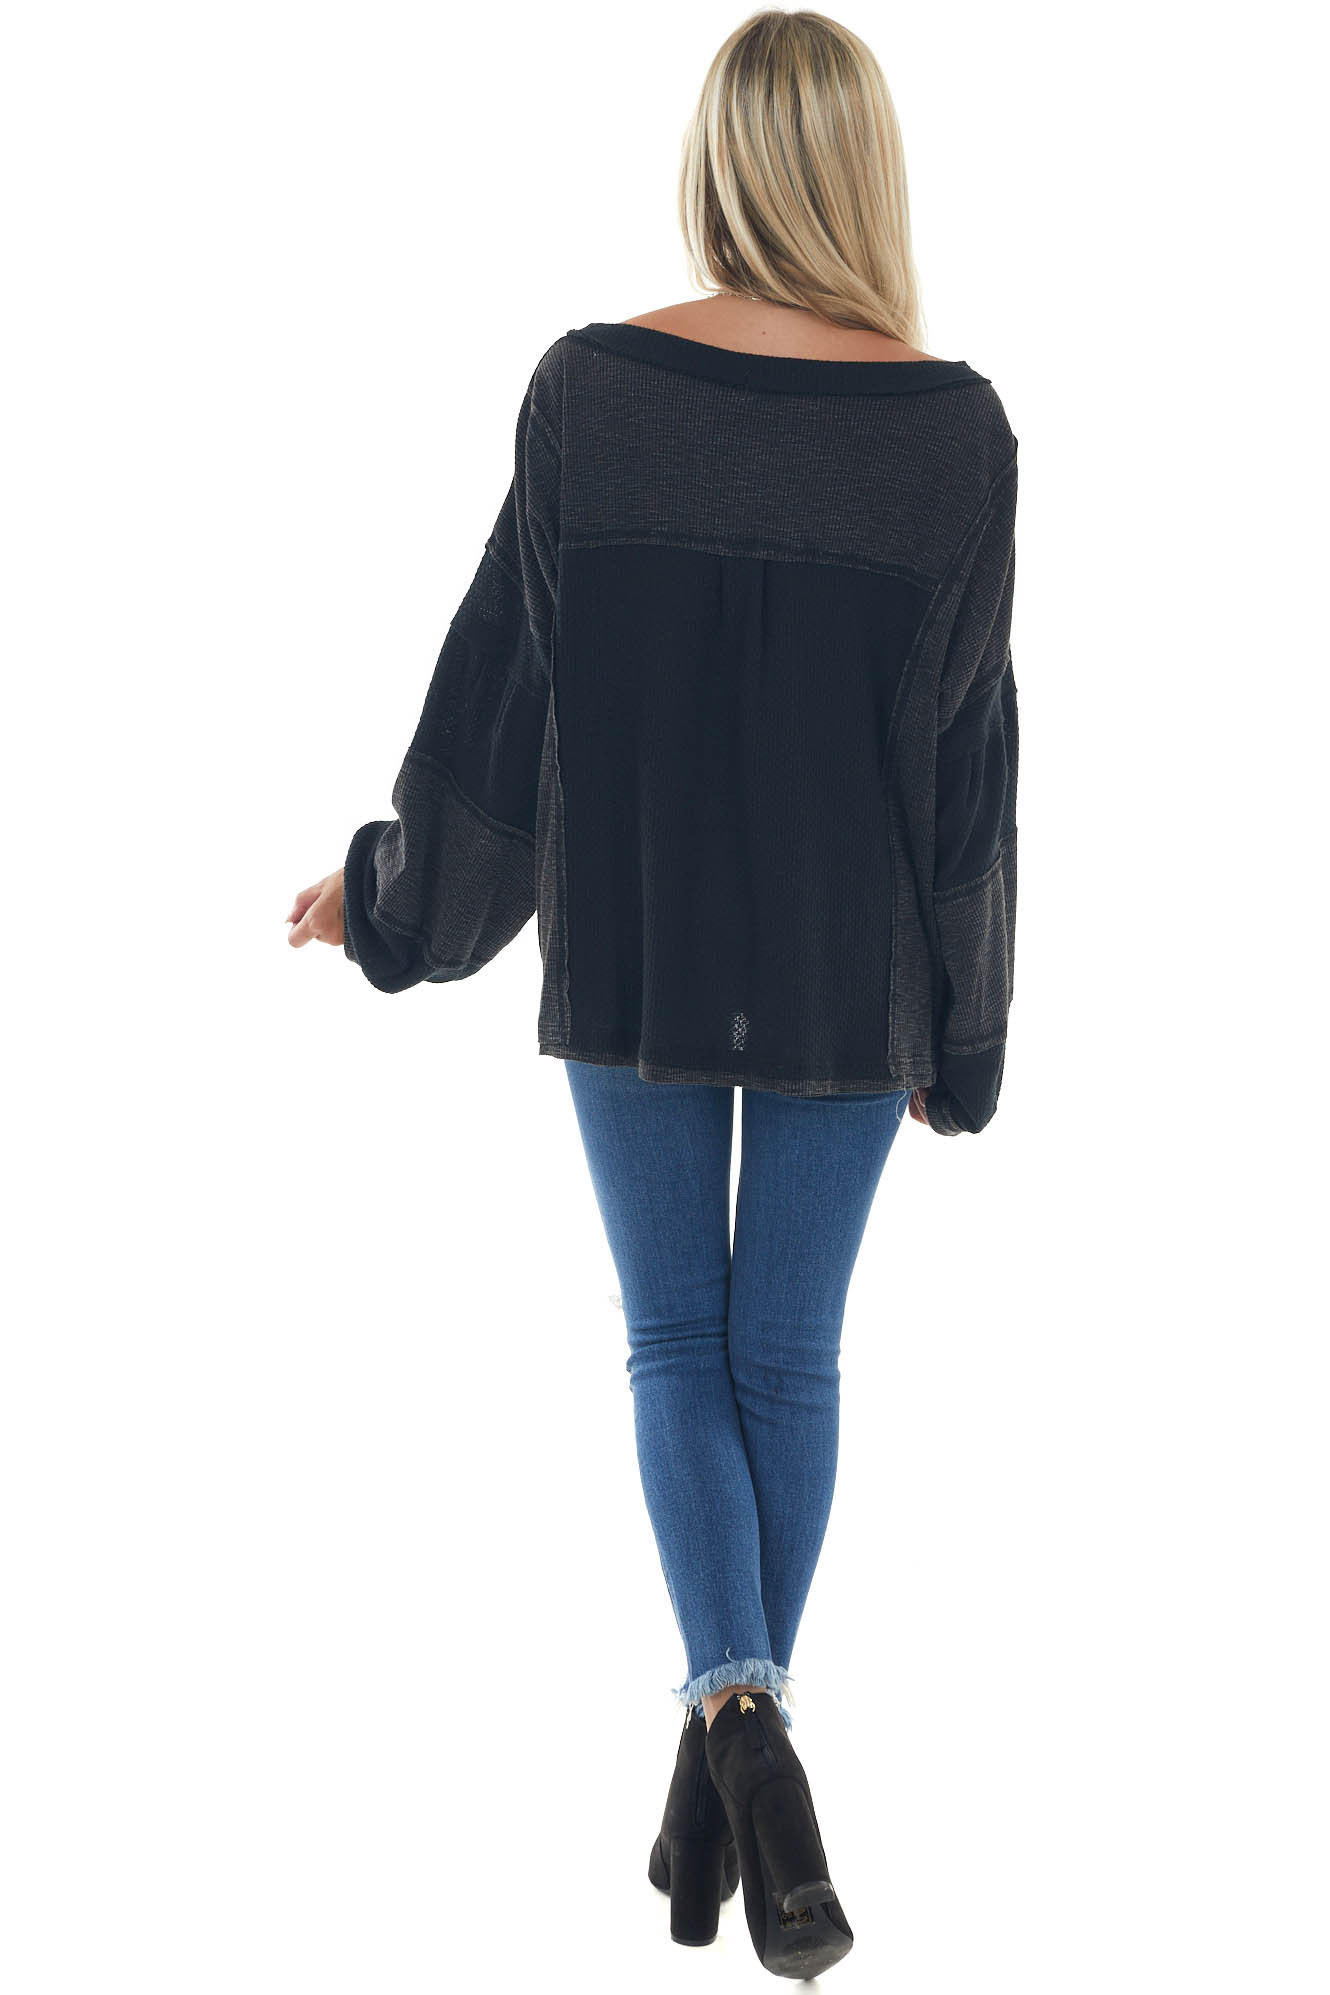 Black and Charcoal Long Tiered Sleeve Top